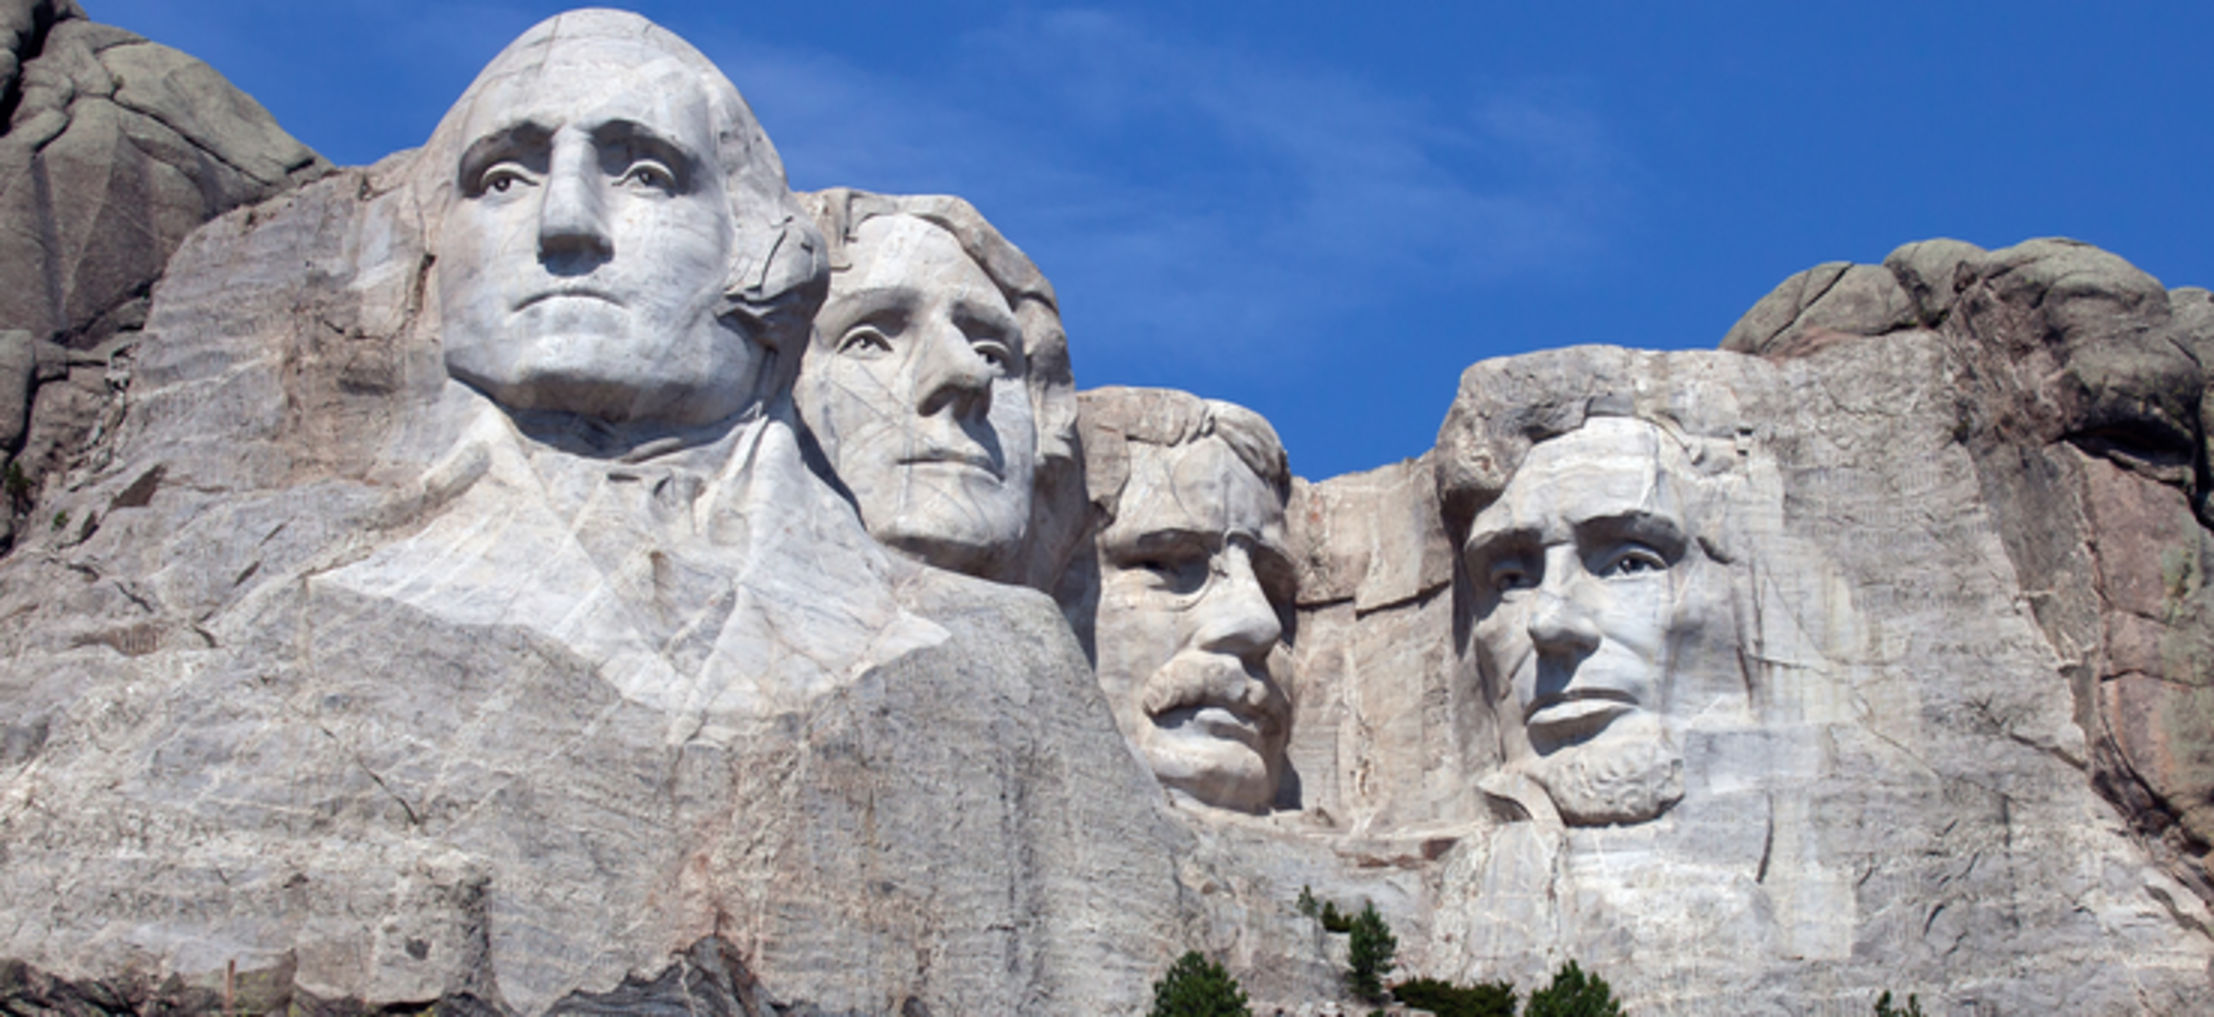 Celebrating Mount Rushmore's Super-Sized and Quirky ...